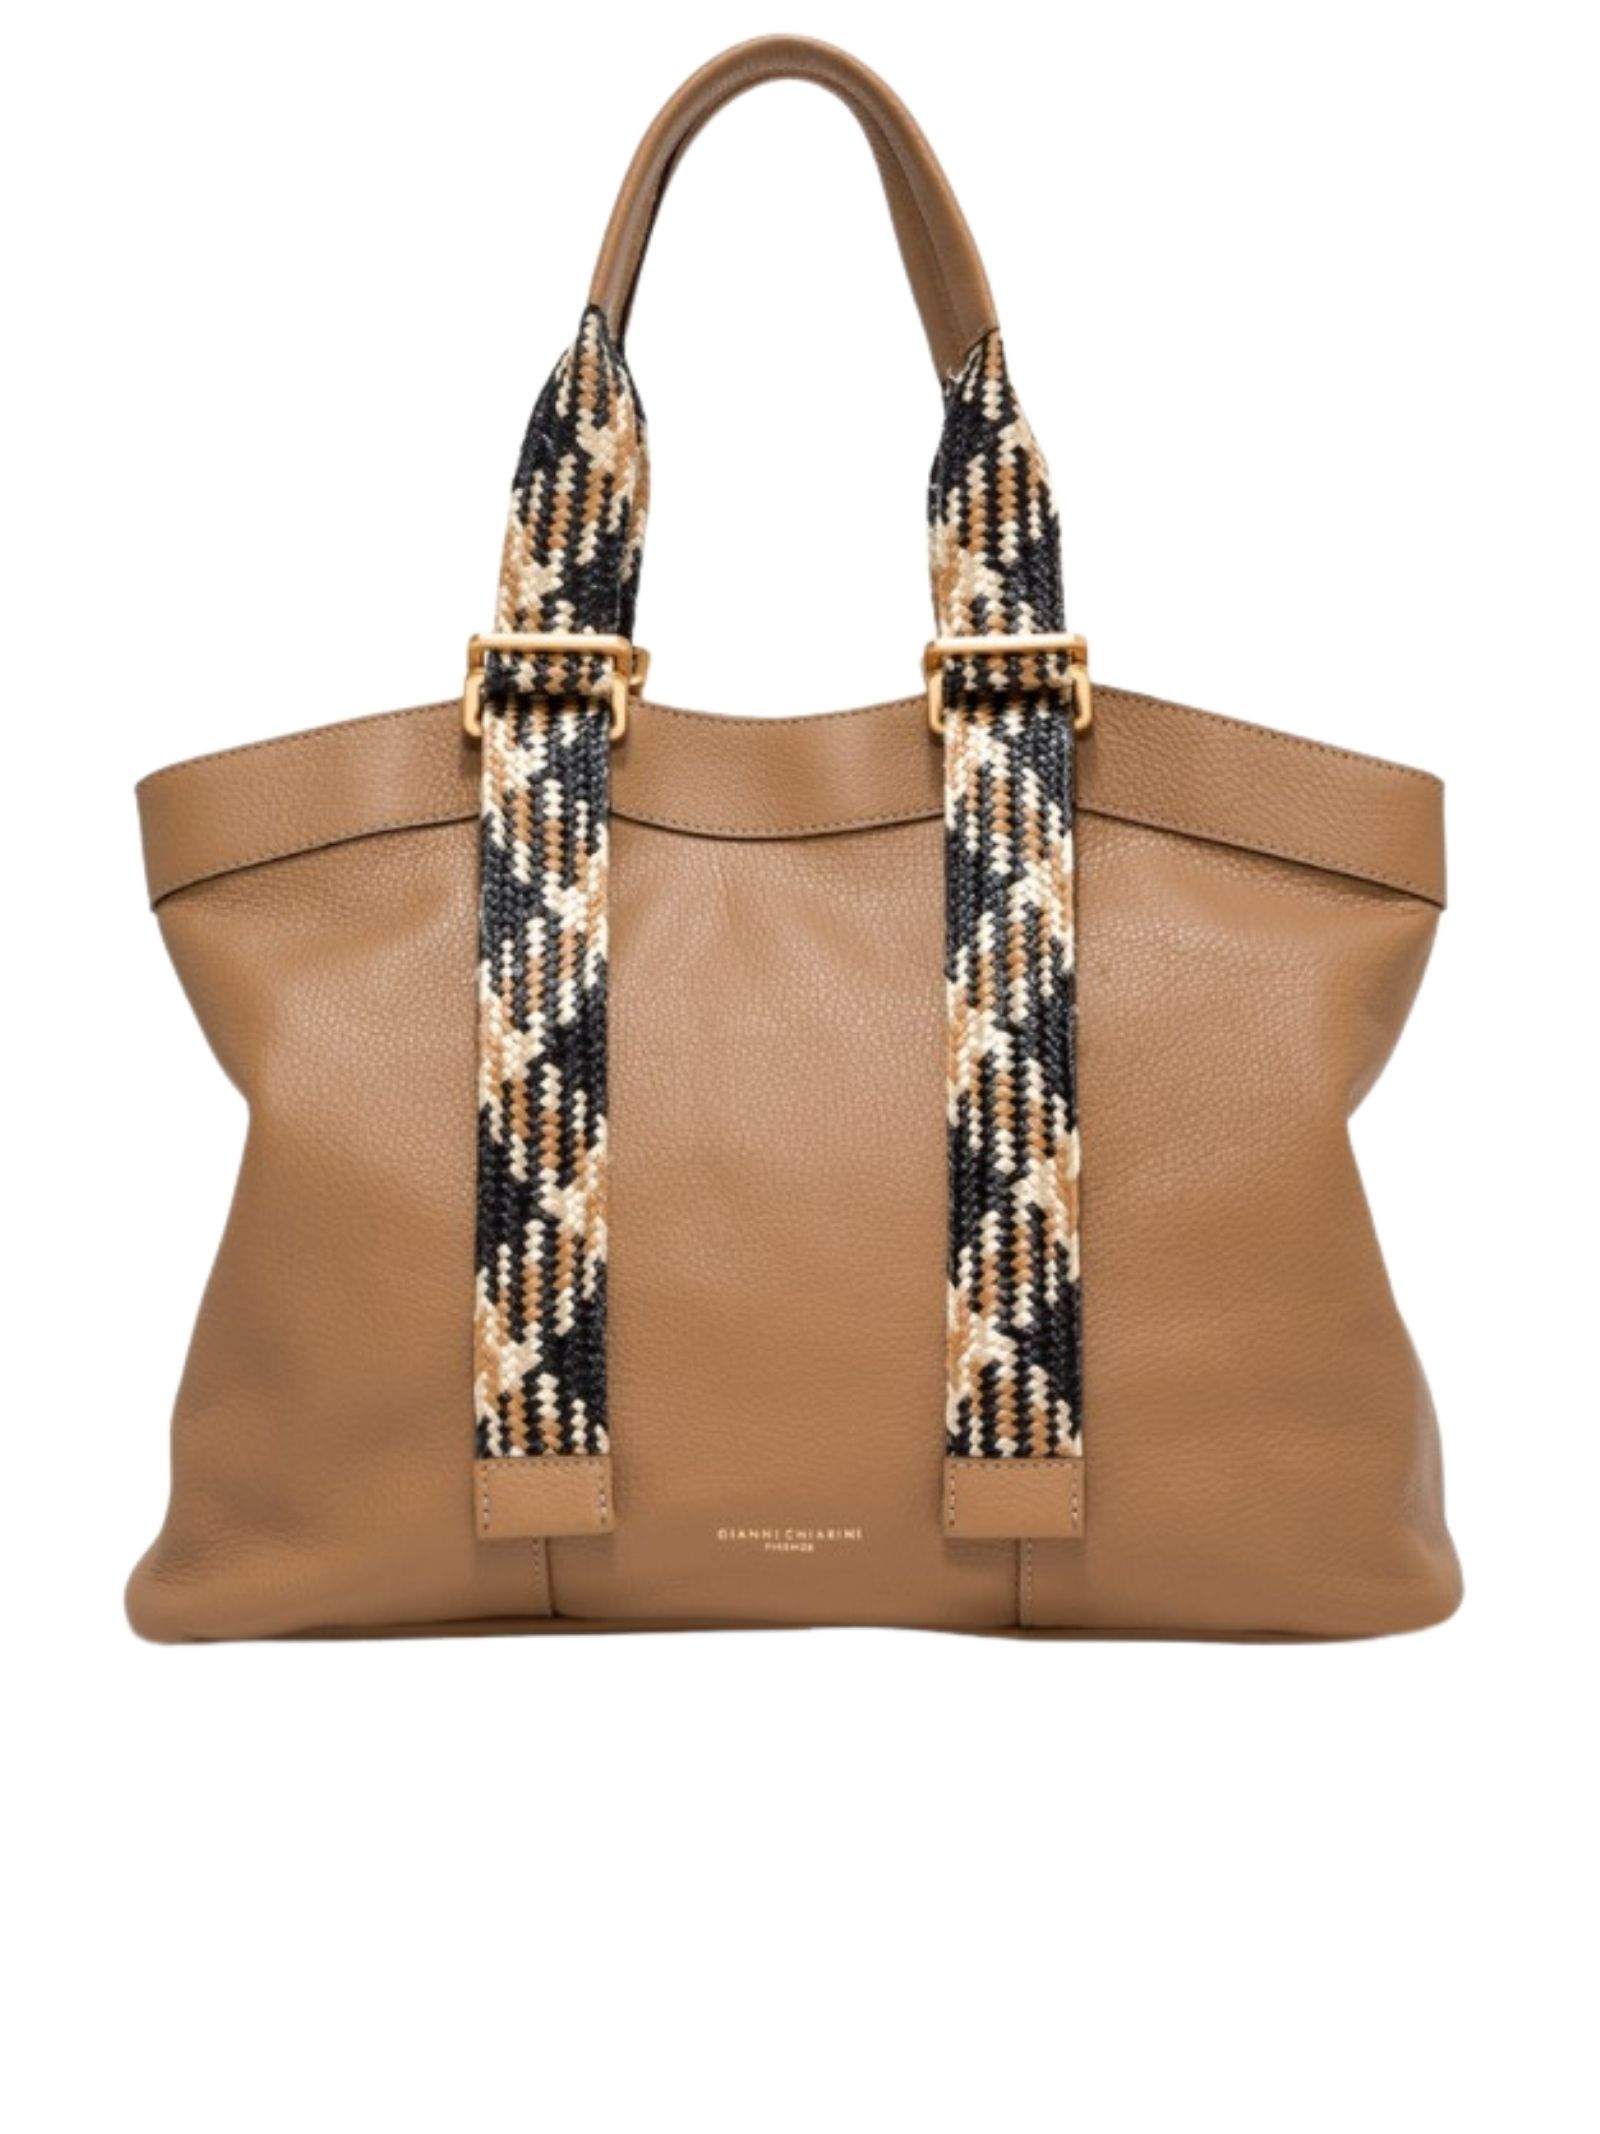 Amaranta Woman Shoulder Bag In Tan Leather With Multicolor Adjustable Handles Gianni Chiarini | Bags and backpacks | BS85200226